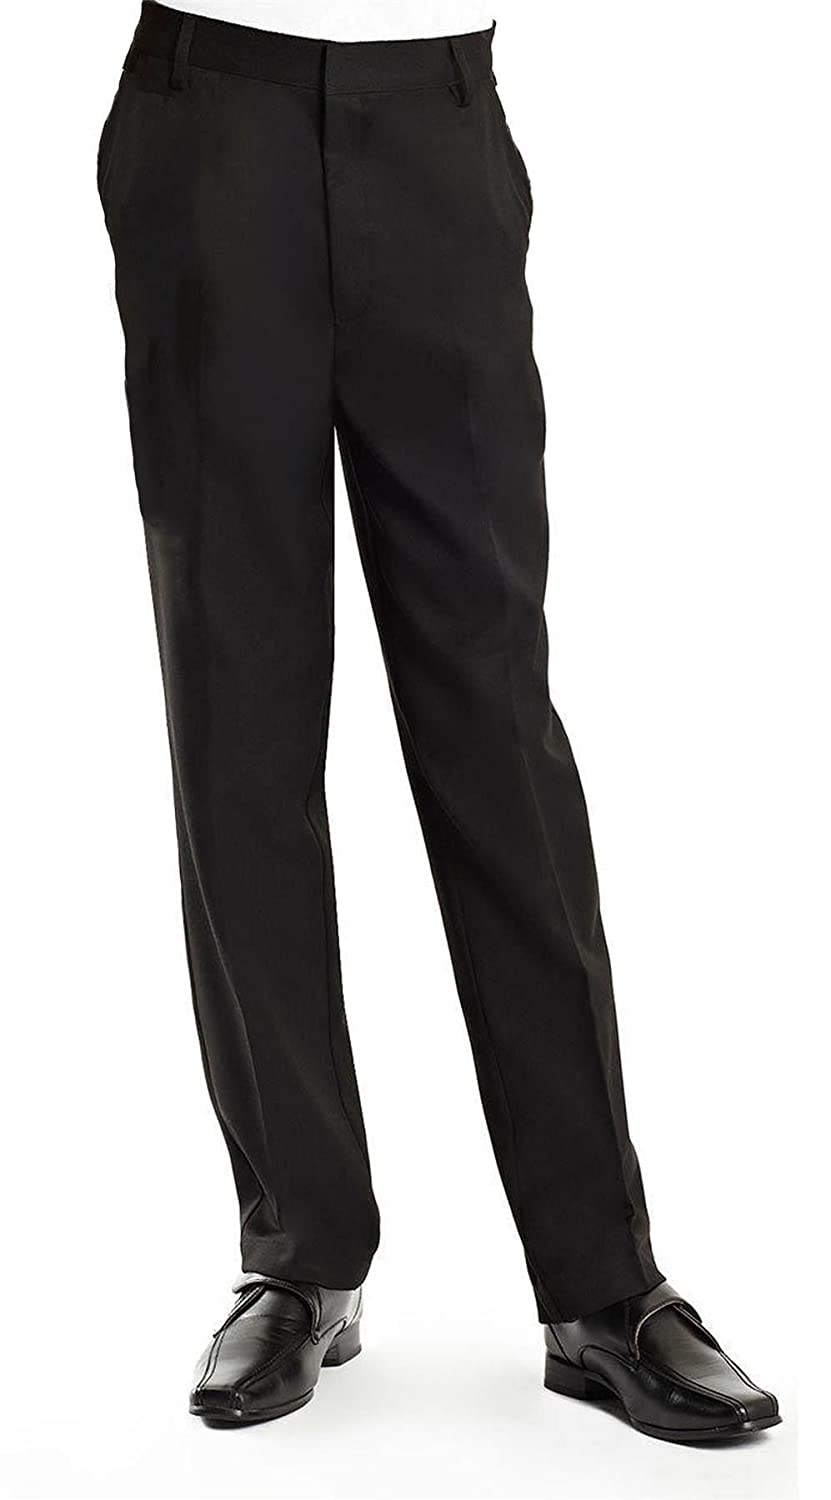 "scb online Boys Waist Size Black Slim FIT School Trousers Sizes 25"" to 34"" Waist"